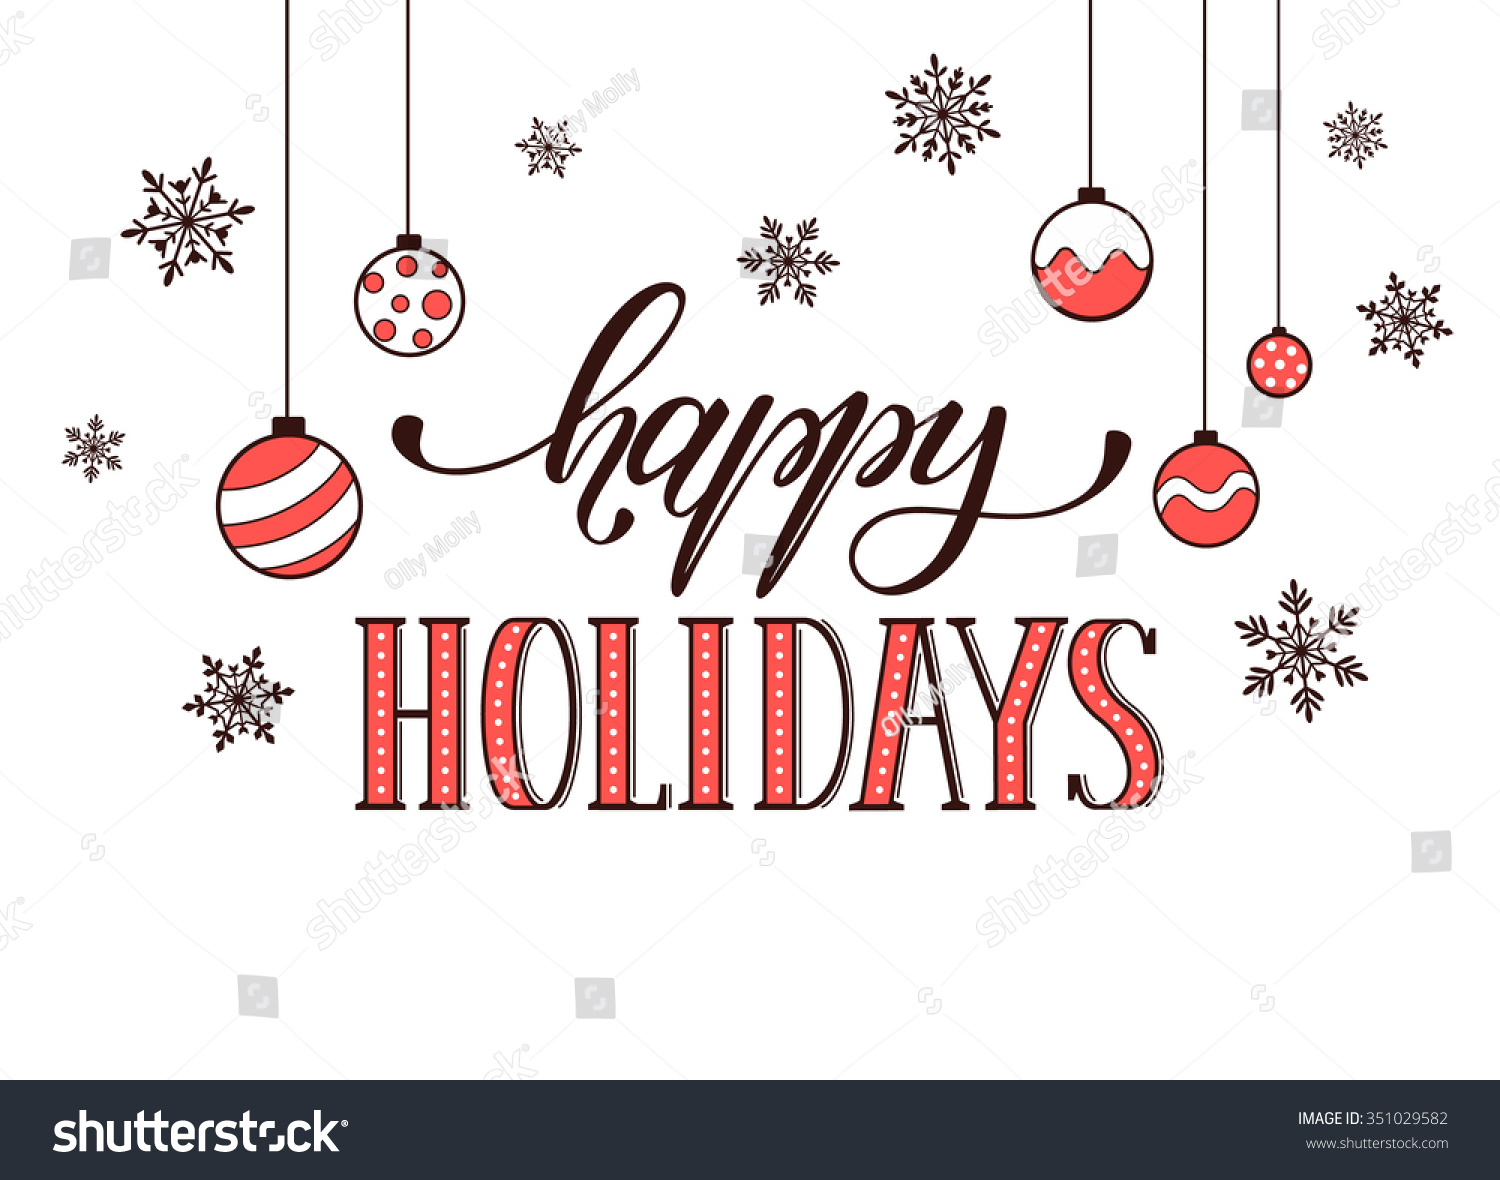 happy holidays postcard template modern new stock vector 351029582 happy holidays postcard template modern new year lettering snowflakes isolated on white background